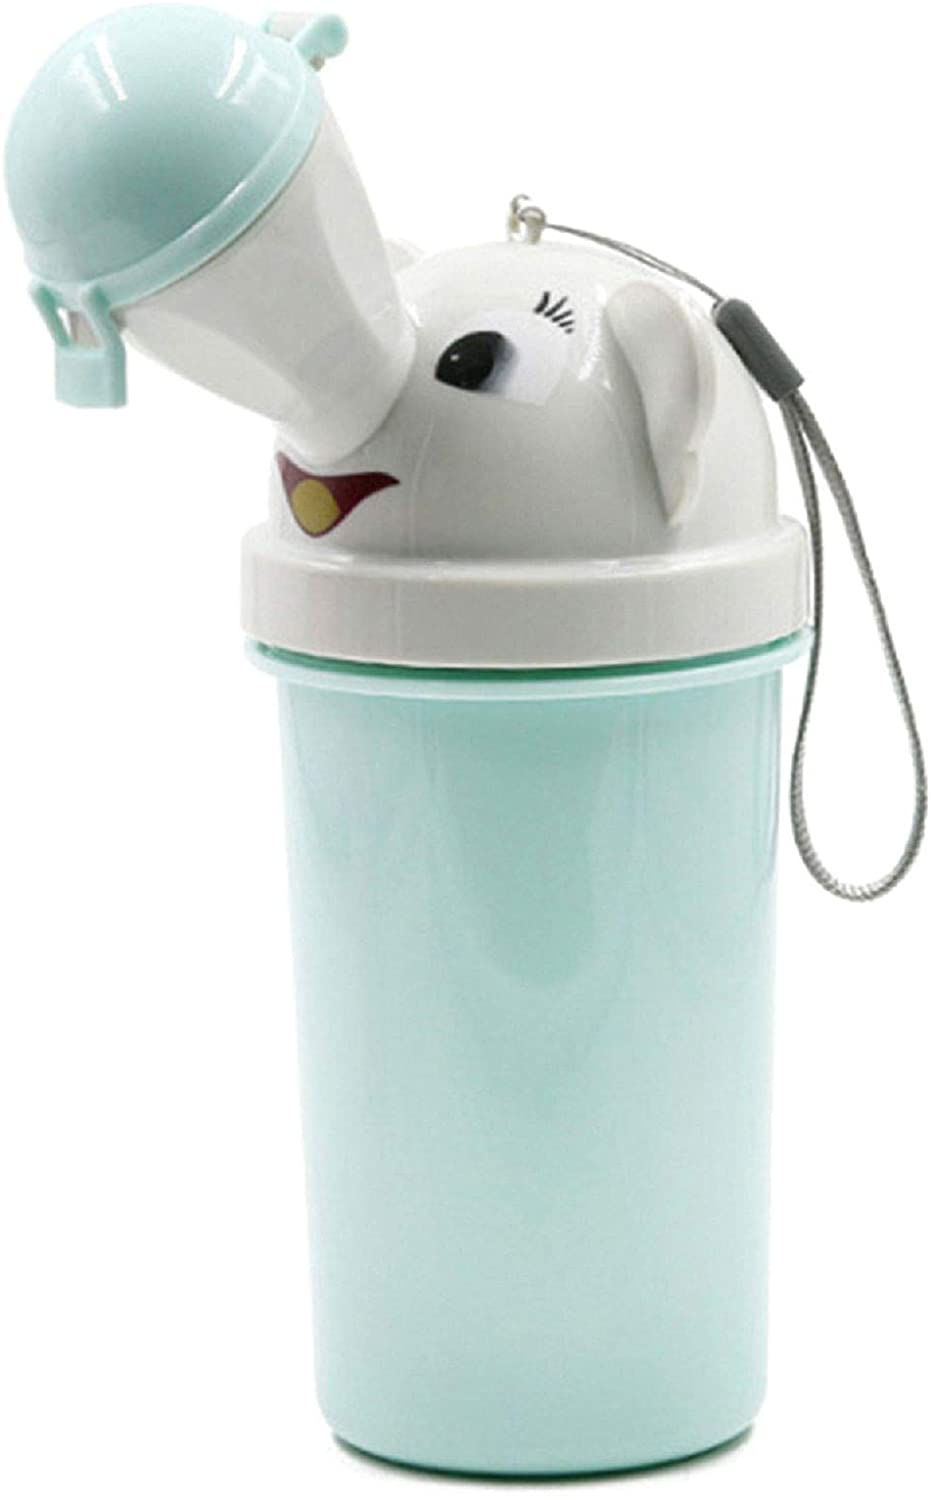 iFCOW Portable Potty Urinal For baby, Emergency Toilet for Travel